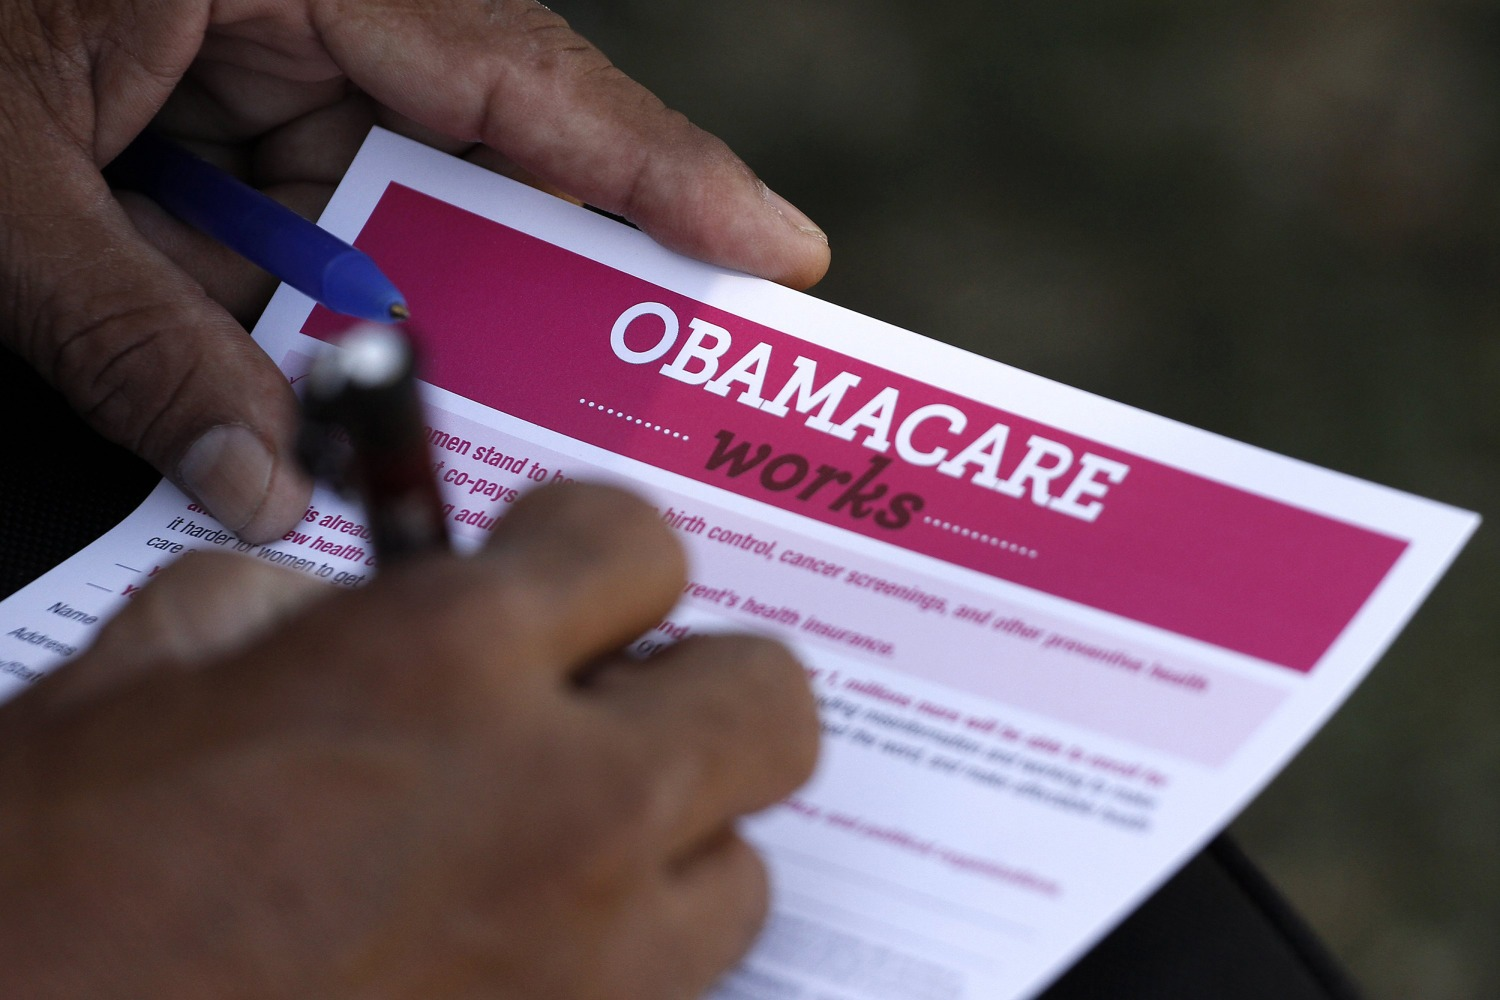 Image A Man Fills Out An Information Card During An Affordable Care Act Outreach Event